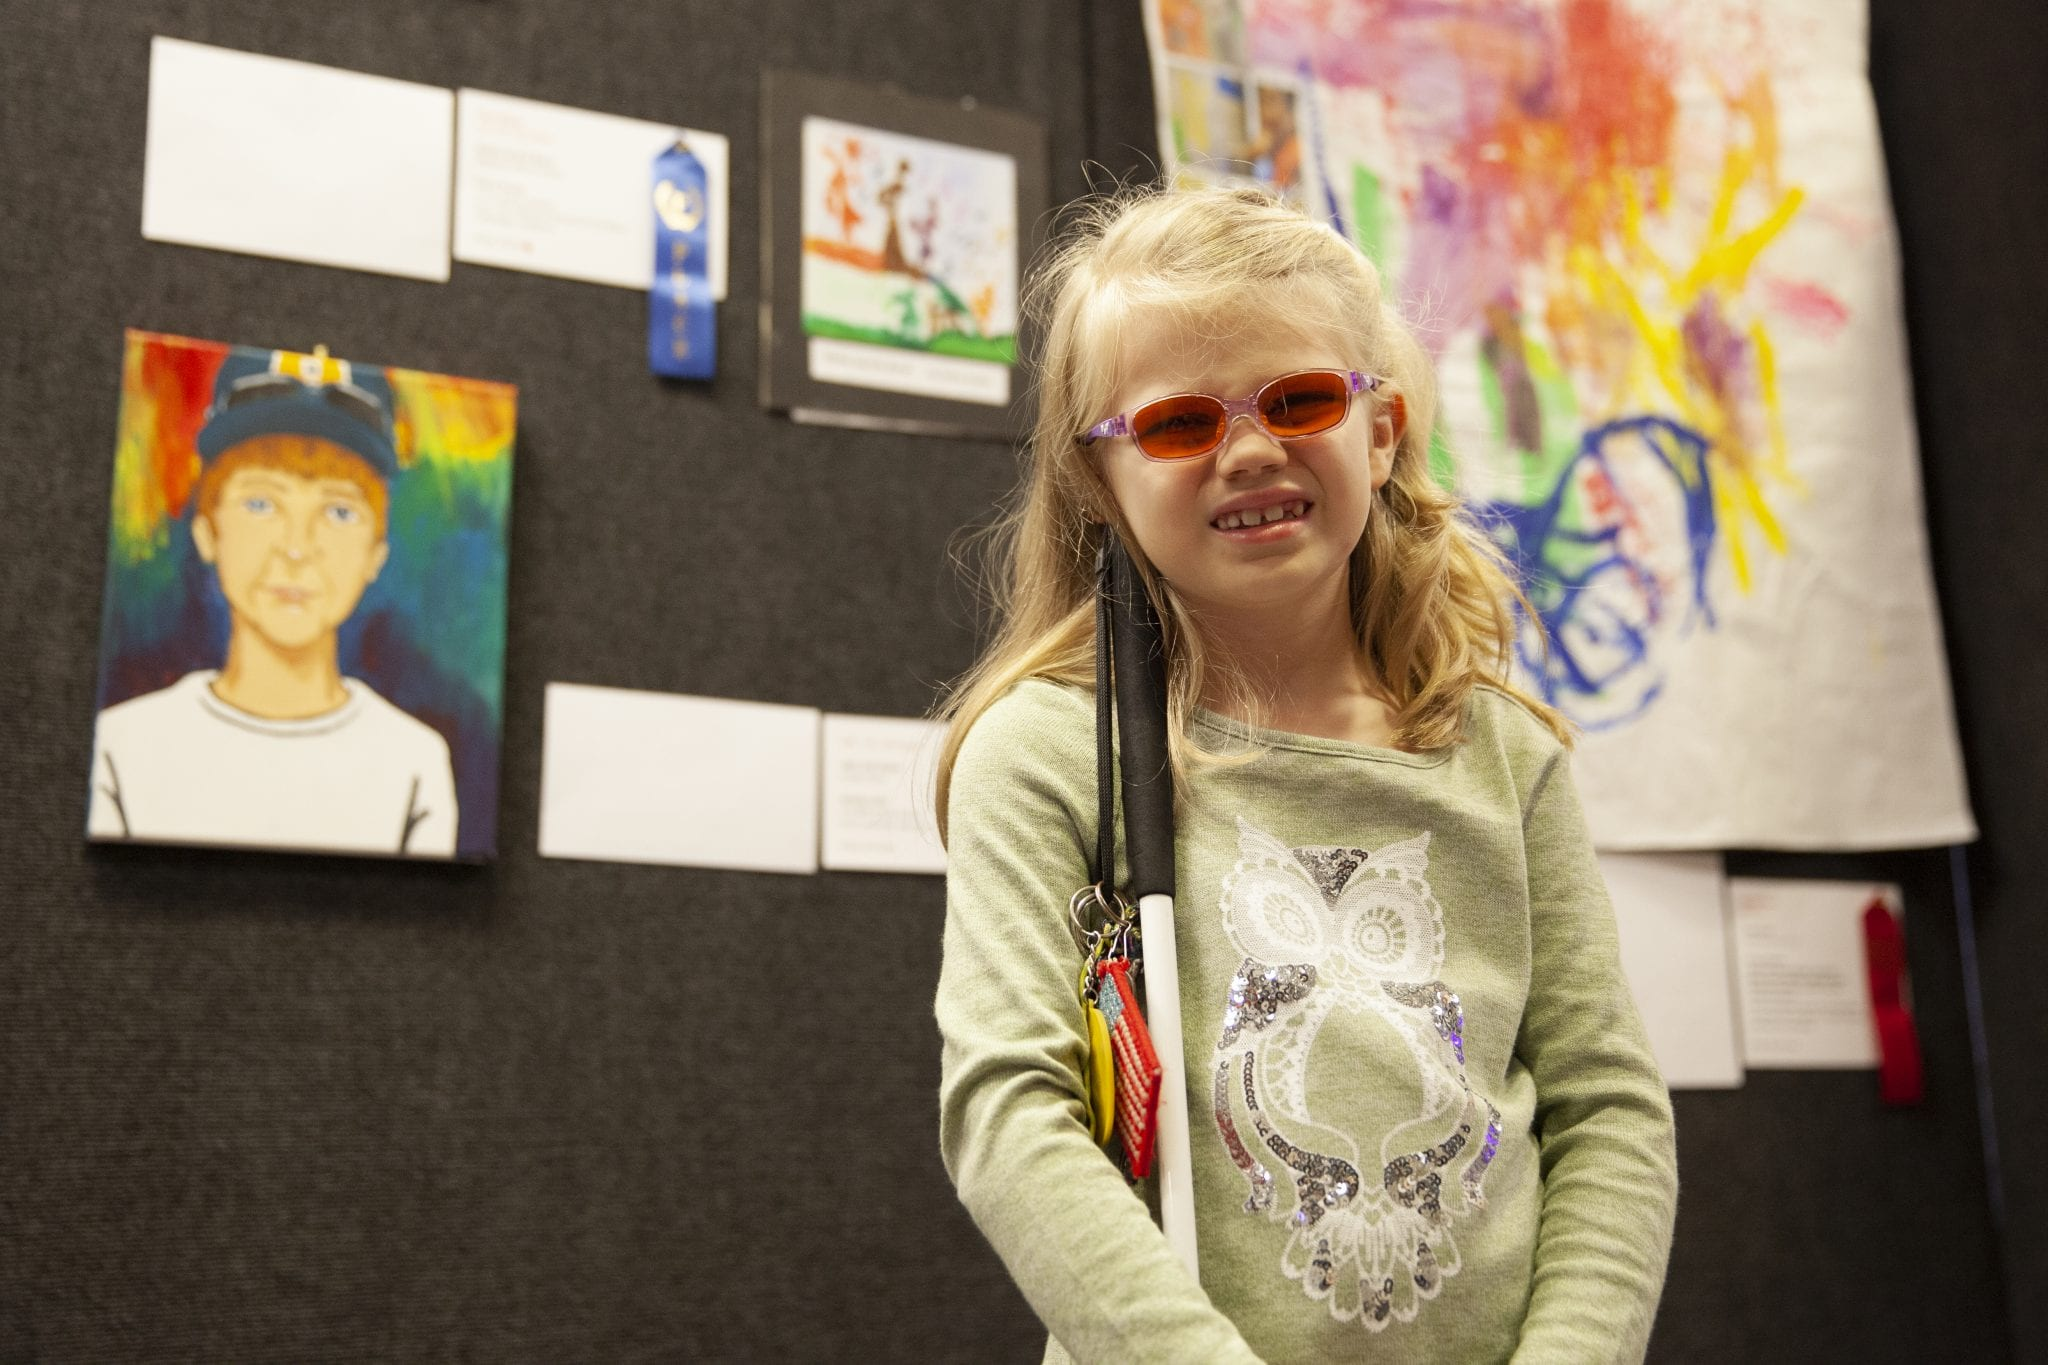 Young girl in pink sunglasses standing in front of a wall of art